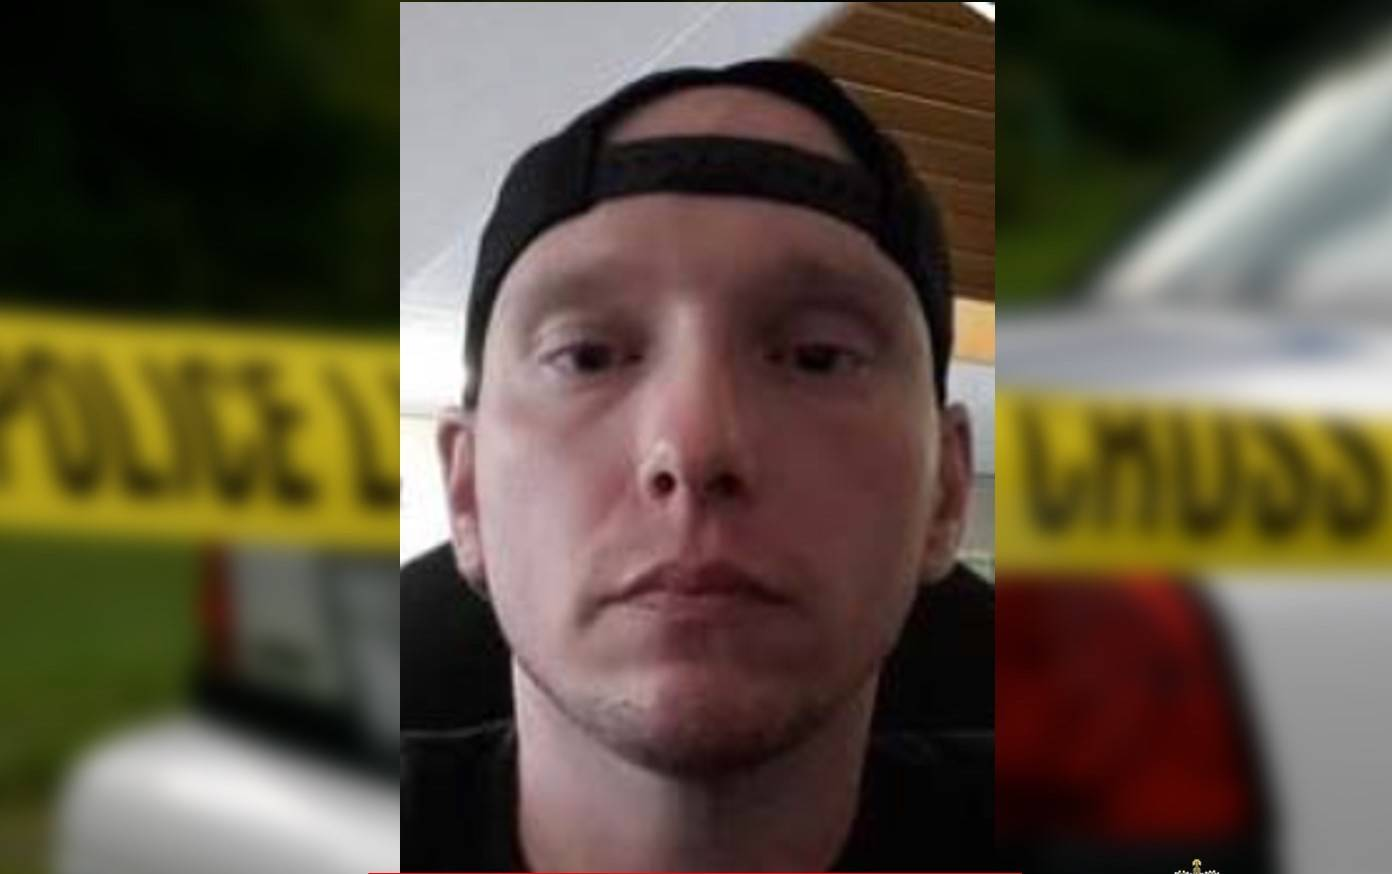 RCMP are searching for Philip Toner, who is a 'person of interest' in the investigation of a suspicious death in Kootenay National Park last week. Photo courtesy BC RCMP.